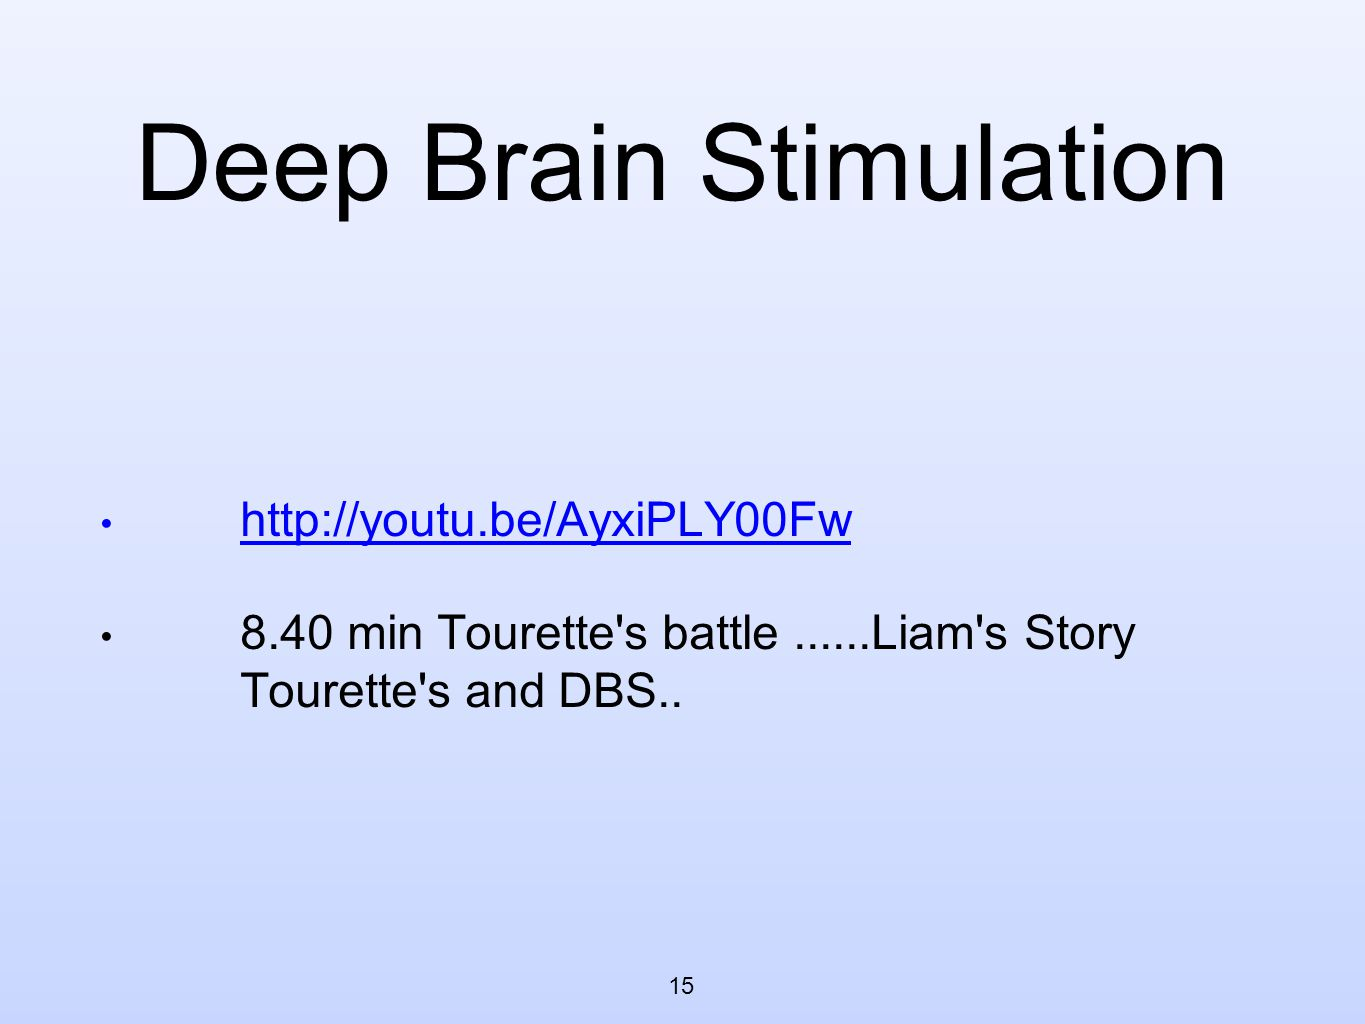 Deep Brain Stimulation • http://youtu.be/AyxiPLY00Fw http://youtu.be/AyxiPLY00Fw • 8.40 min Tourette s battle......Liam s Story Tourette s and DBS..